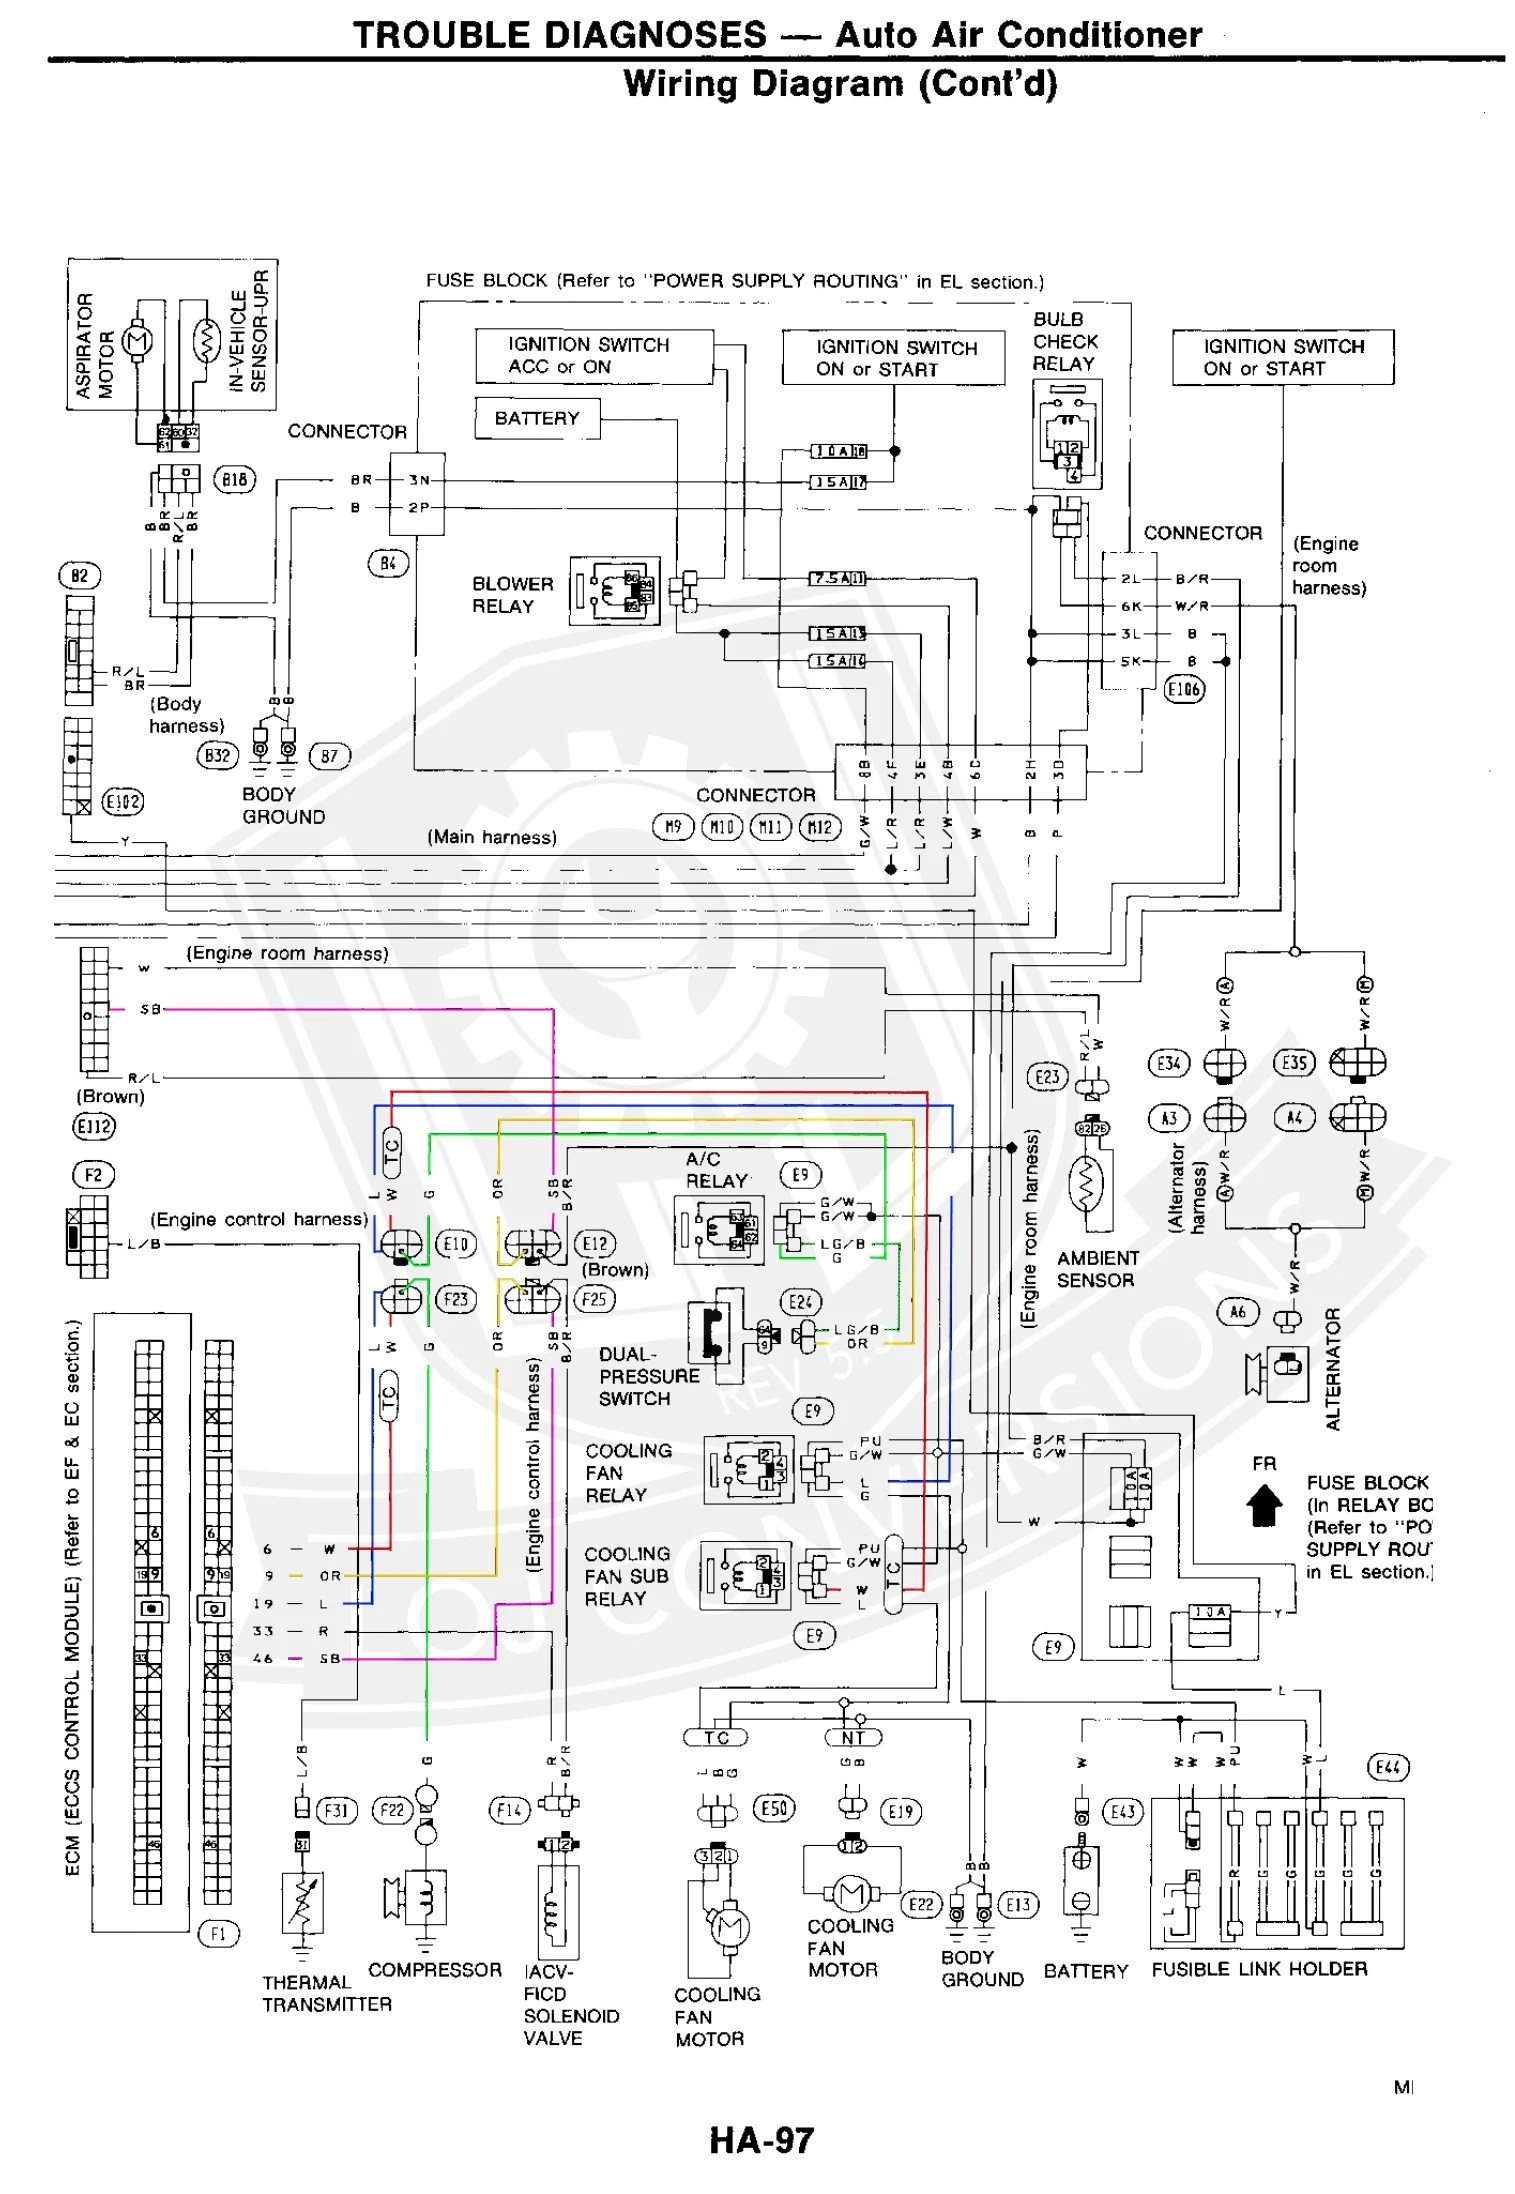 medium resolution of cooling fan relay wiring diagram for ls3 wiring library cooling fan relay wiring diagram for ls3